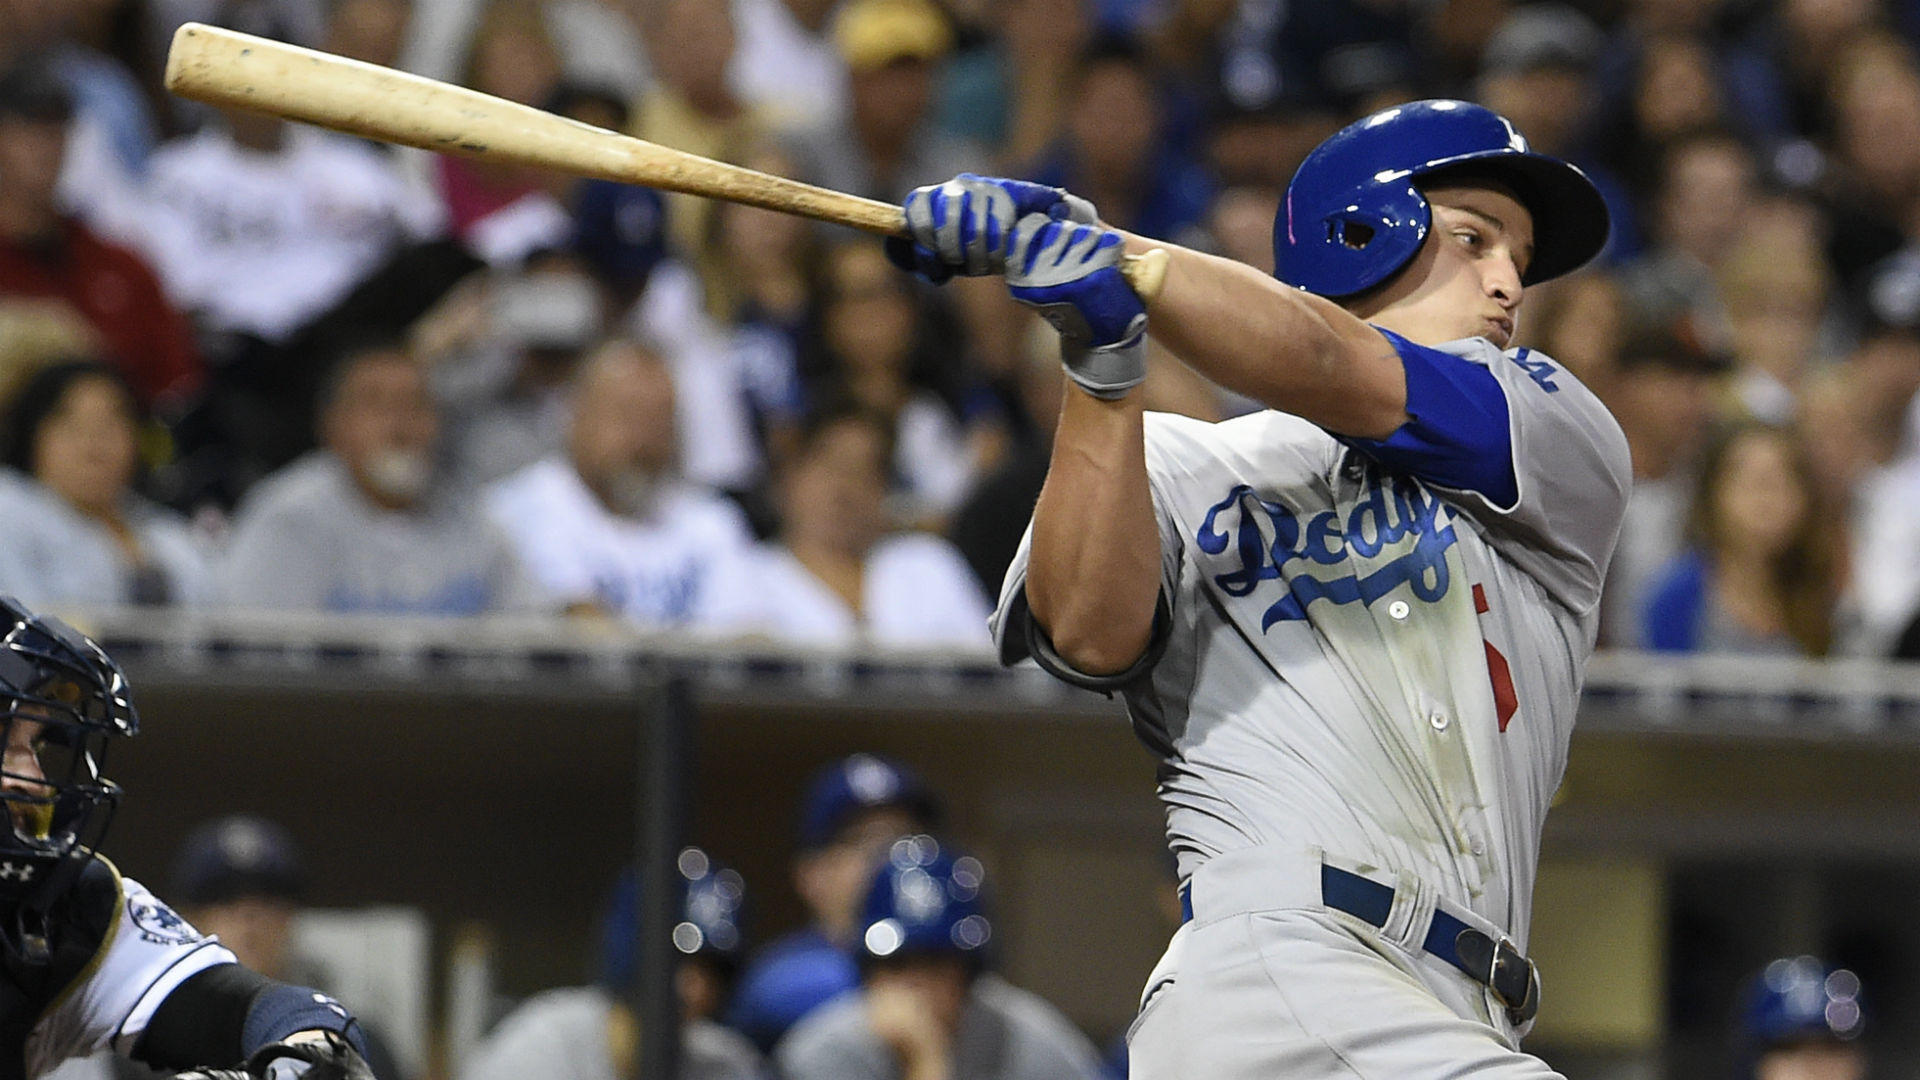 Corey-Seager-090515-GETTY-FTR